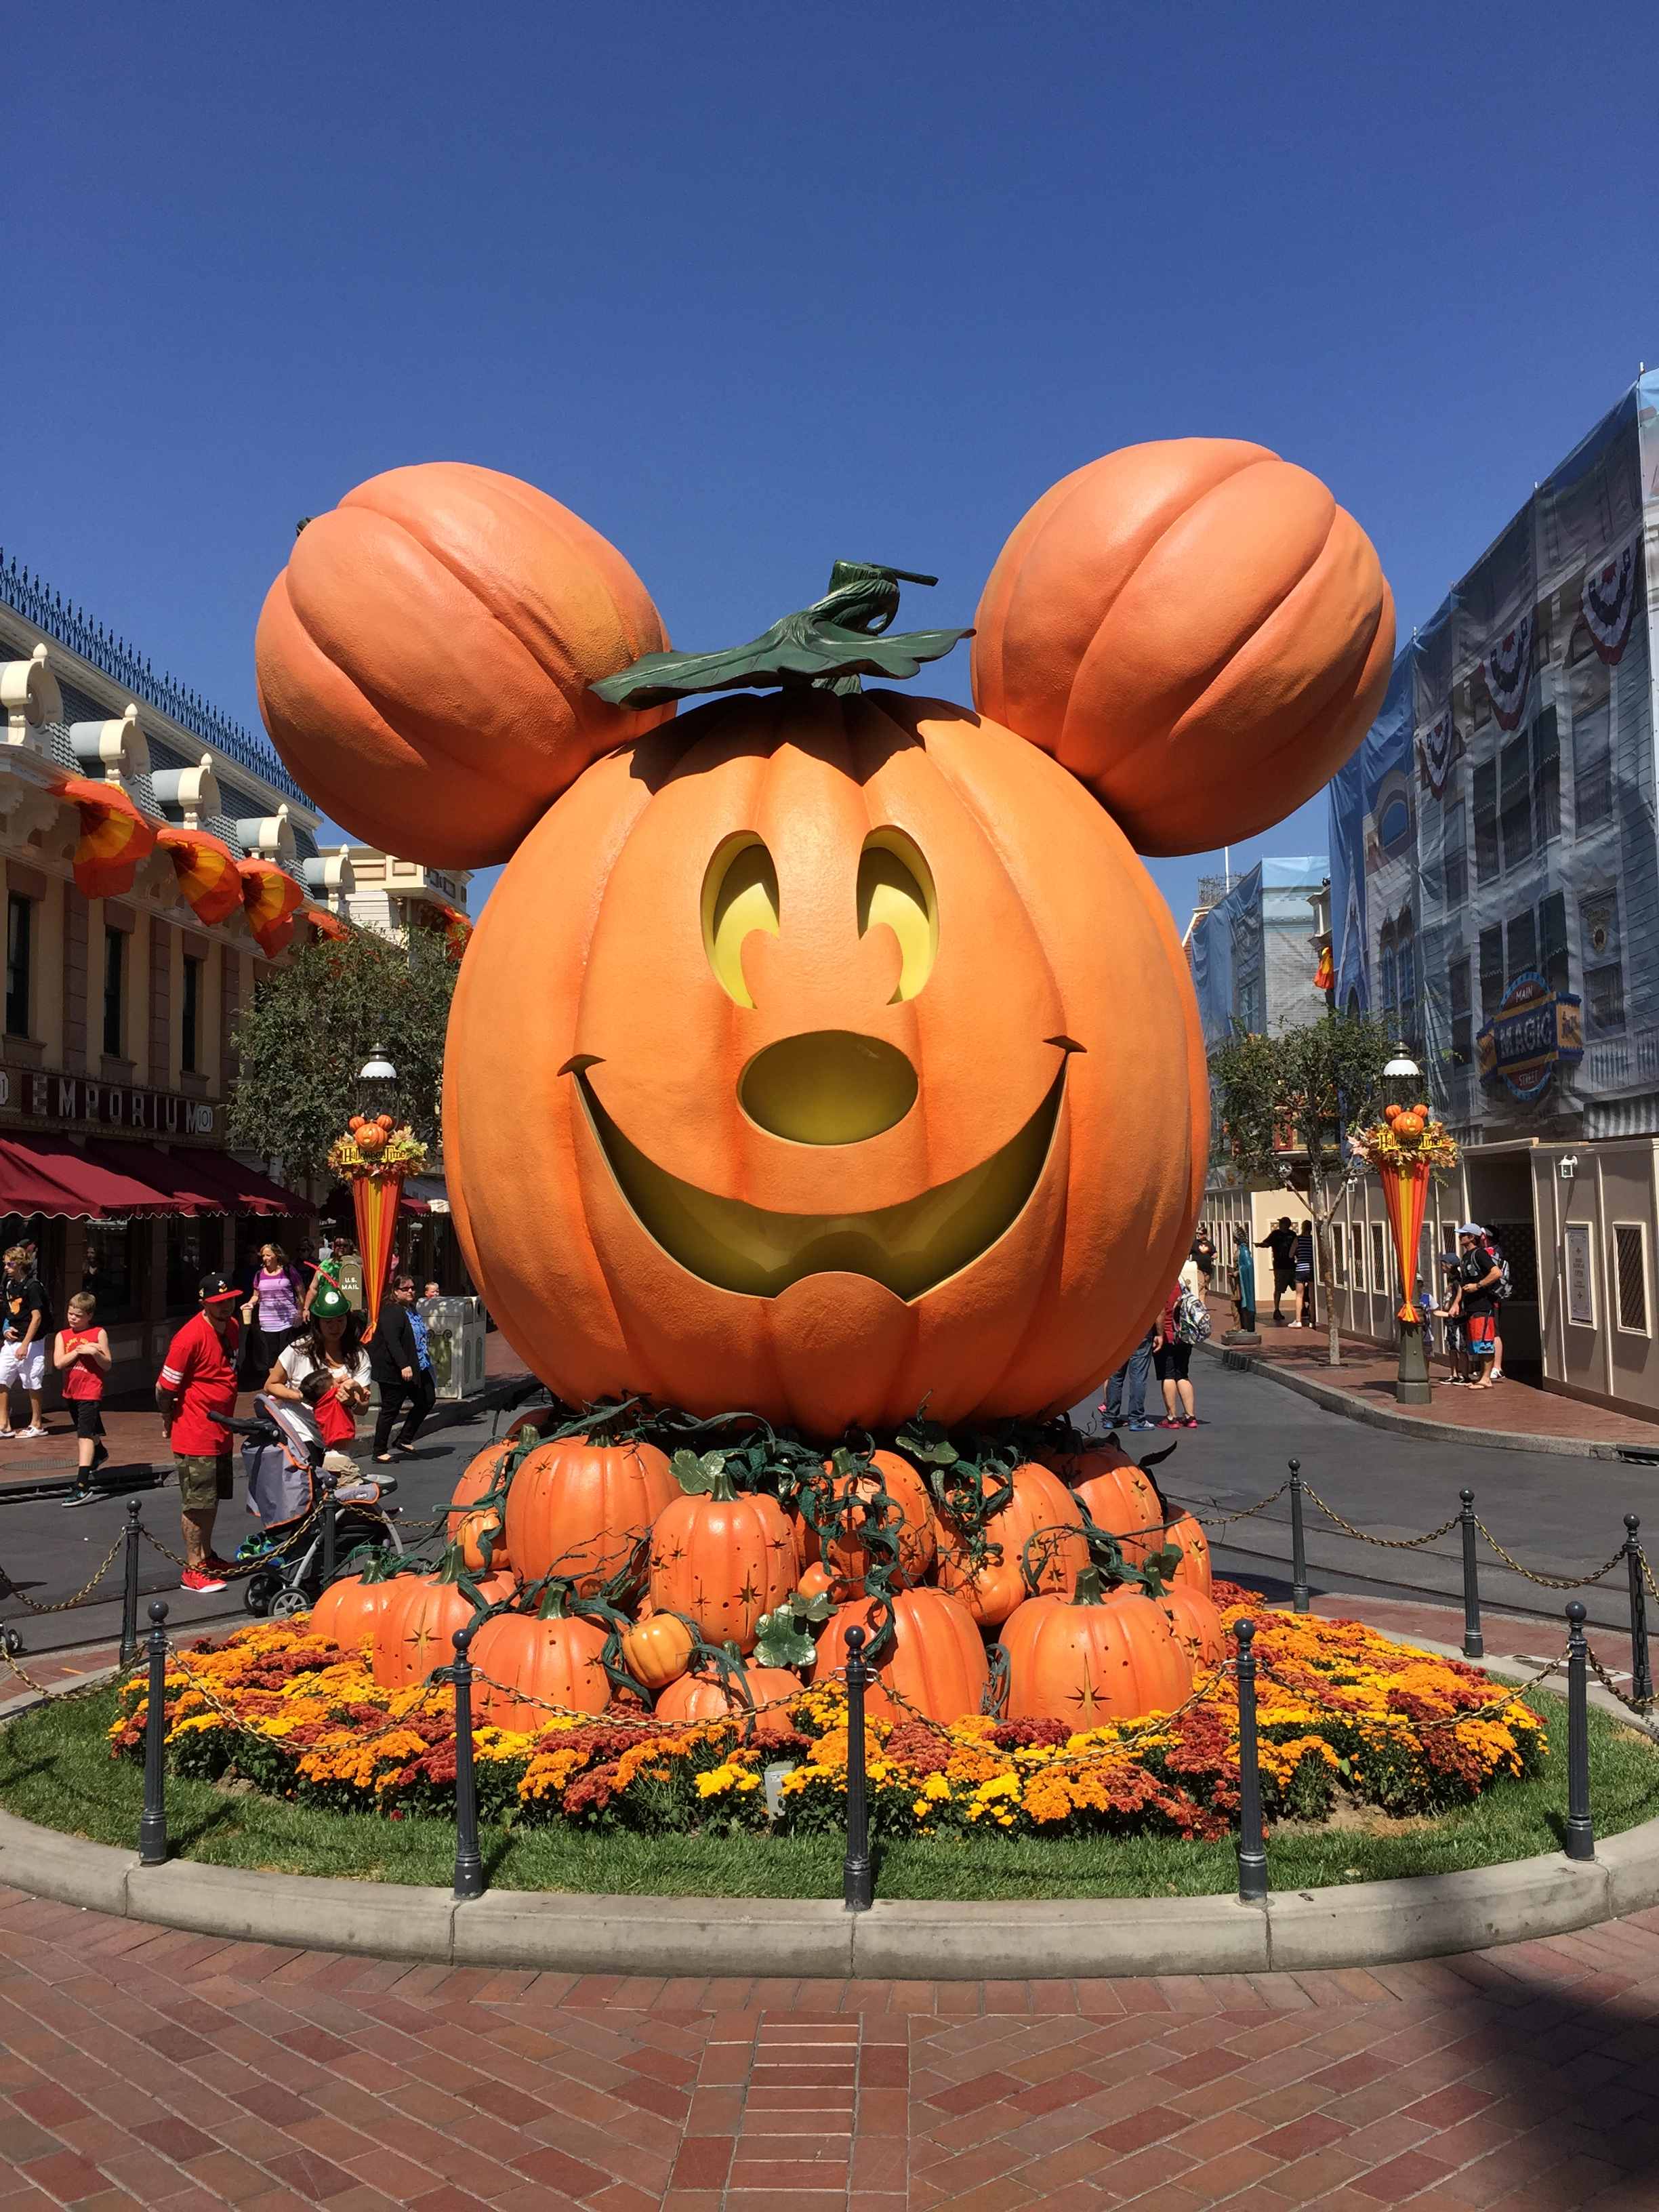 5 Tips on How to Best Enjoy the Halloween Season at Disneyland